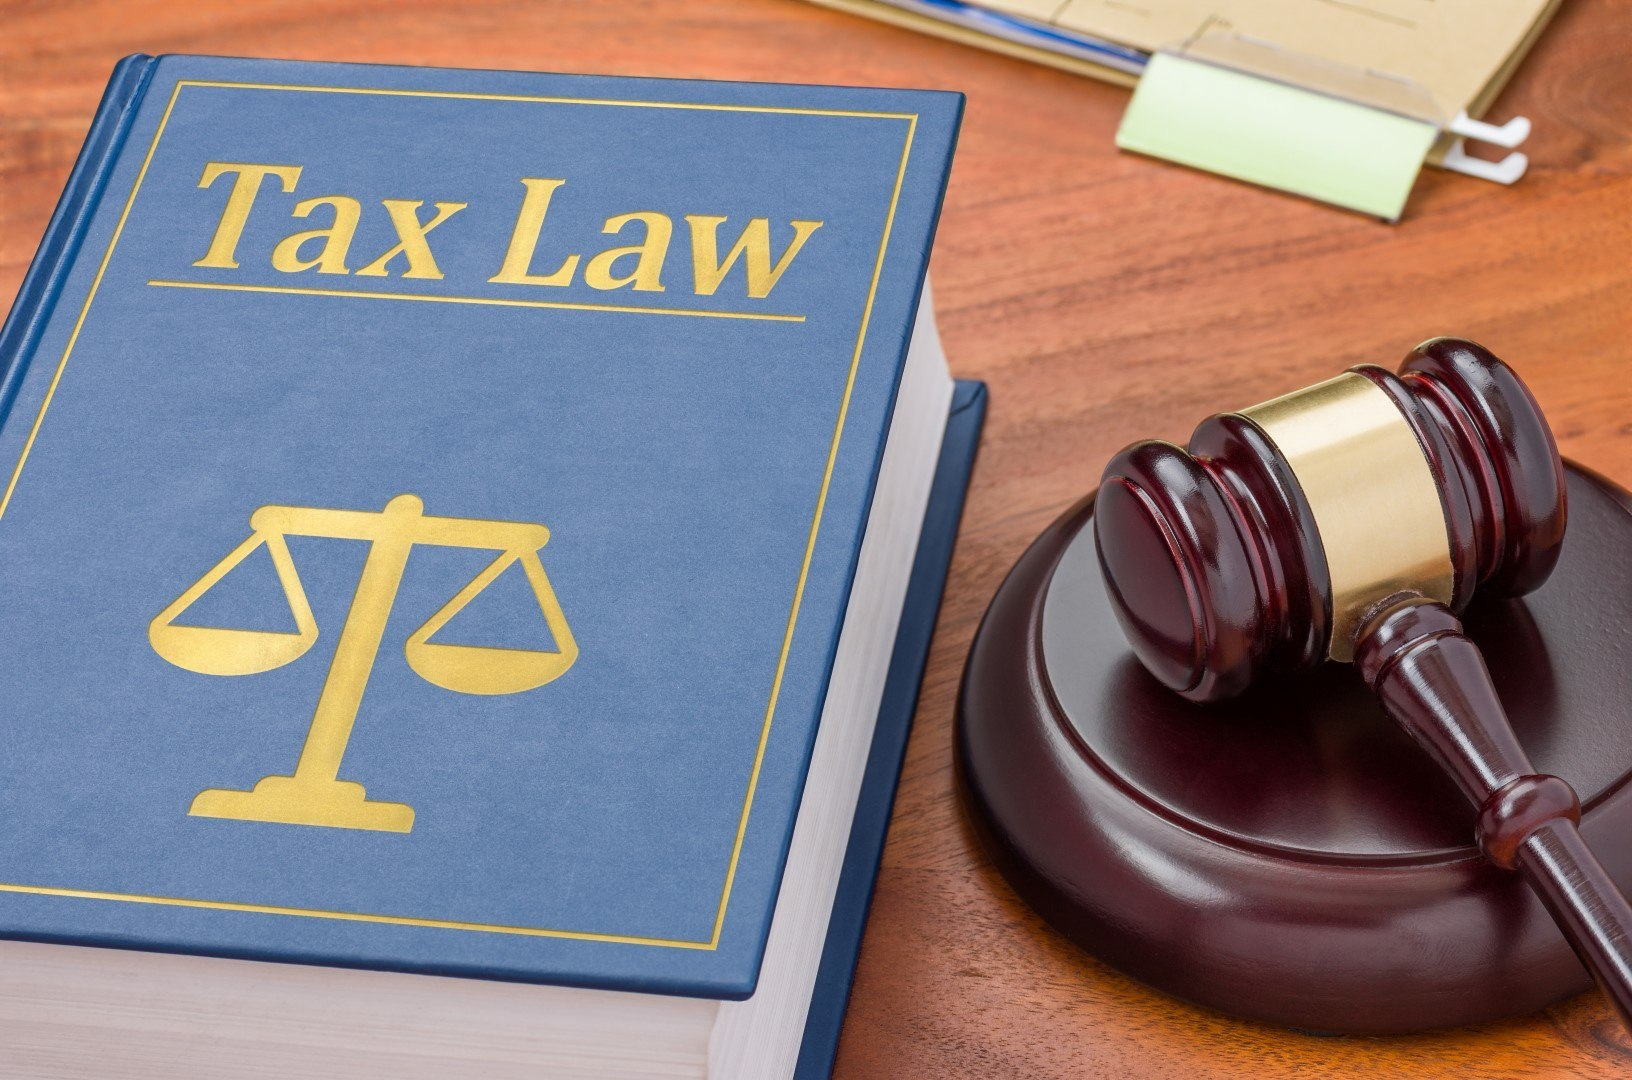 A law book with a gavel - Tax law